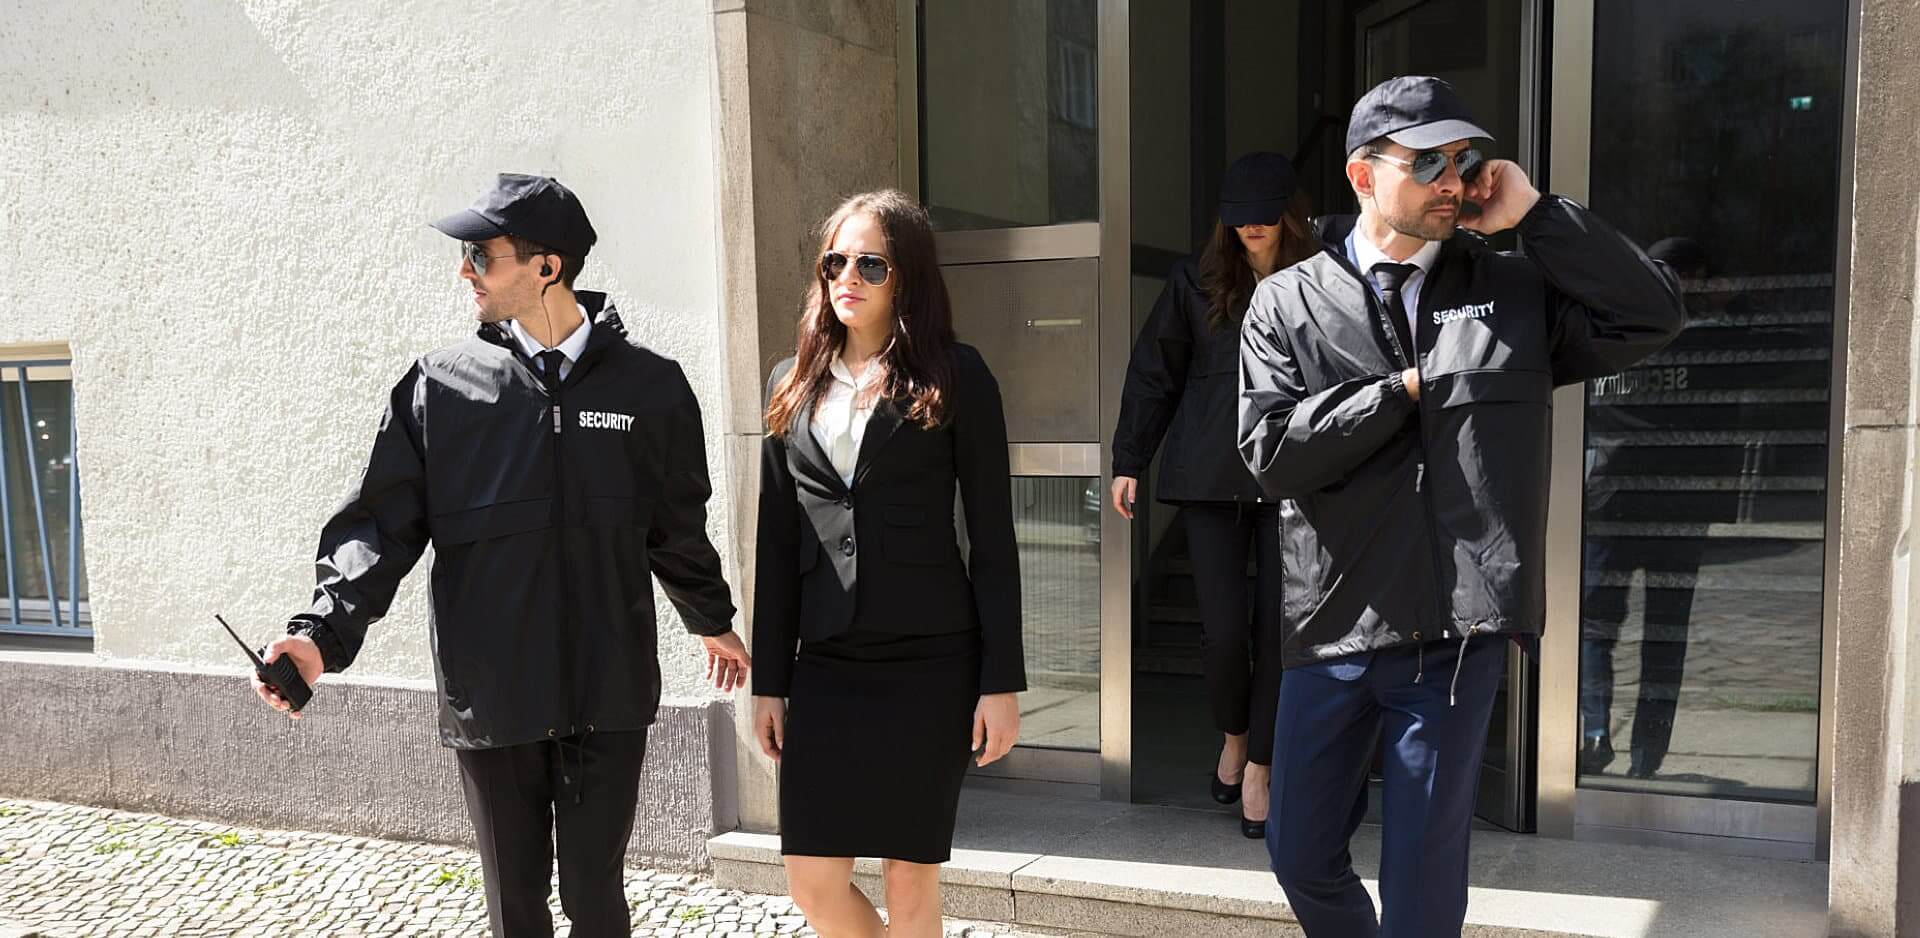 security escorting vip woman outside the building